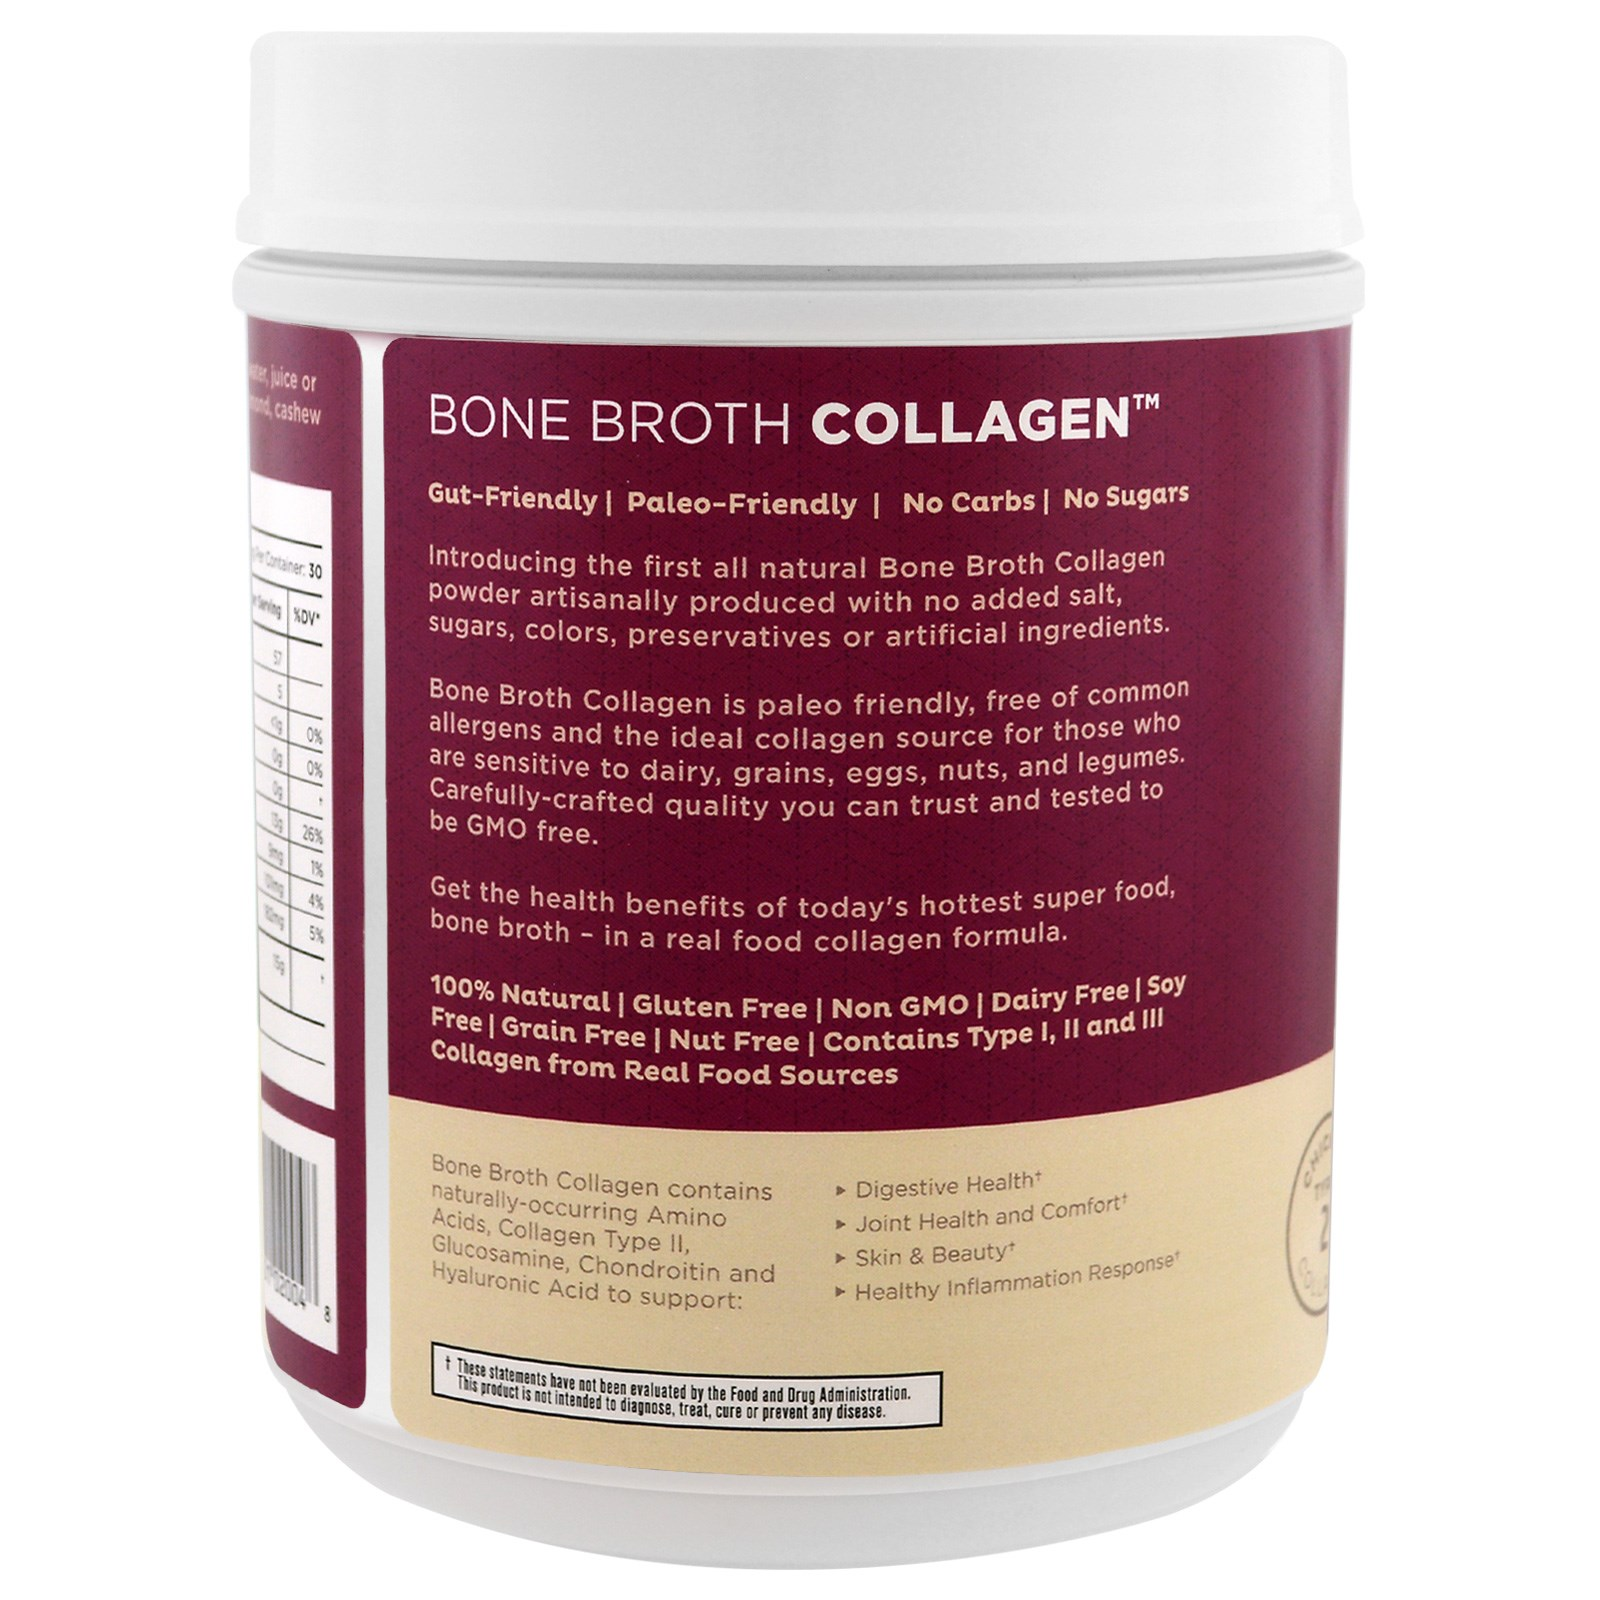 Dr axe ancient nutrition bone broth collagen pure 15 for Dr axe fish oil